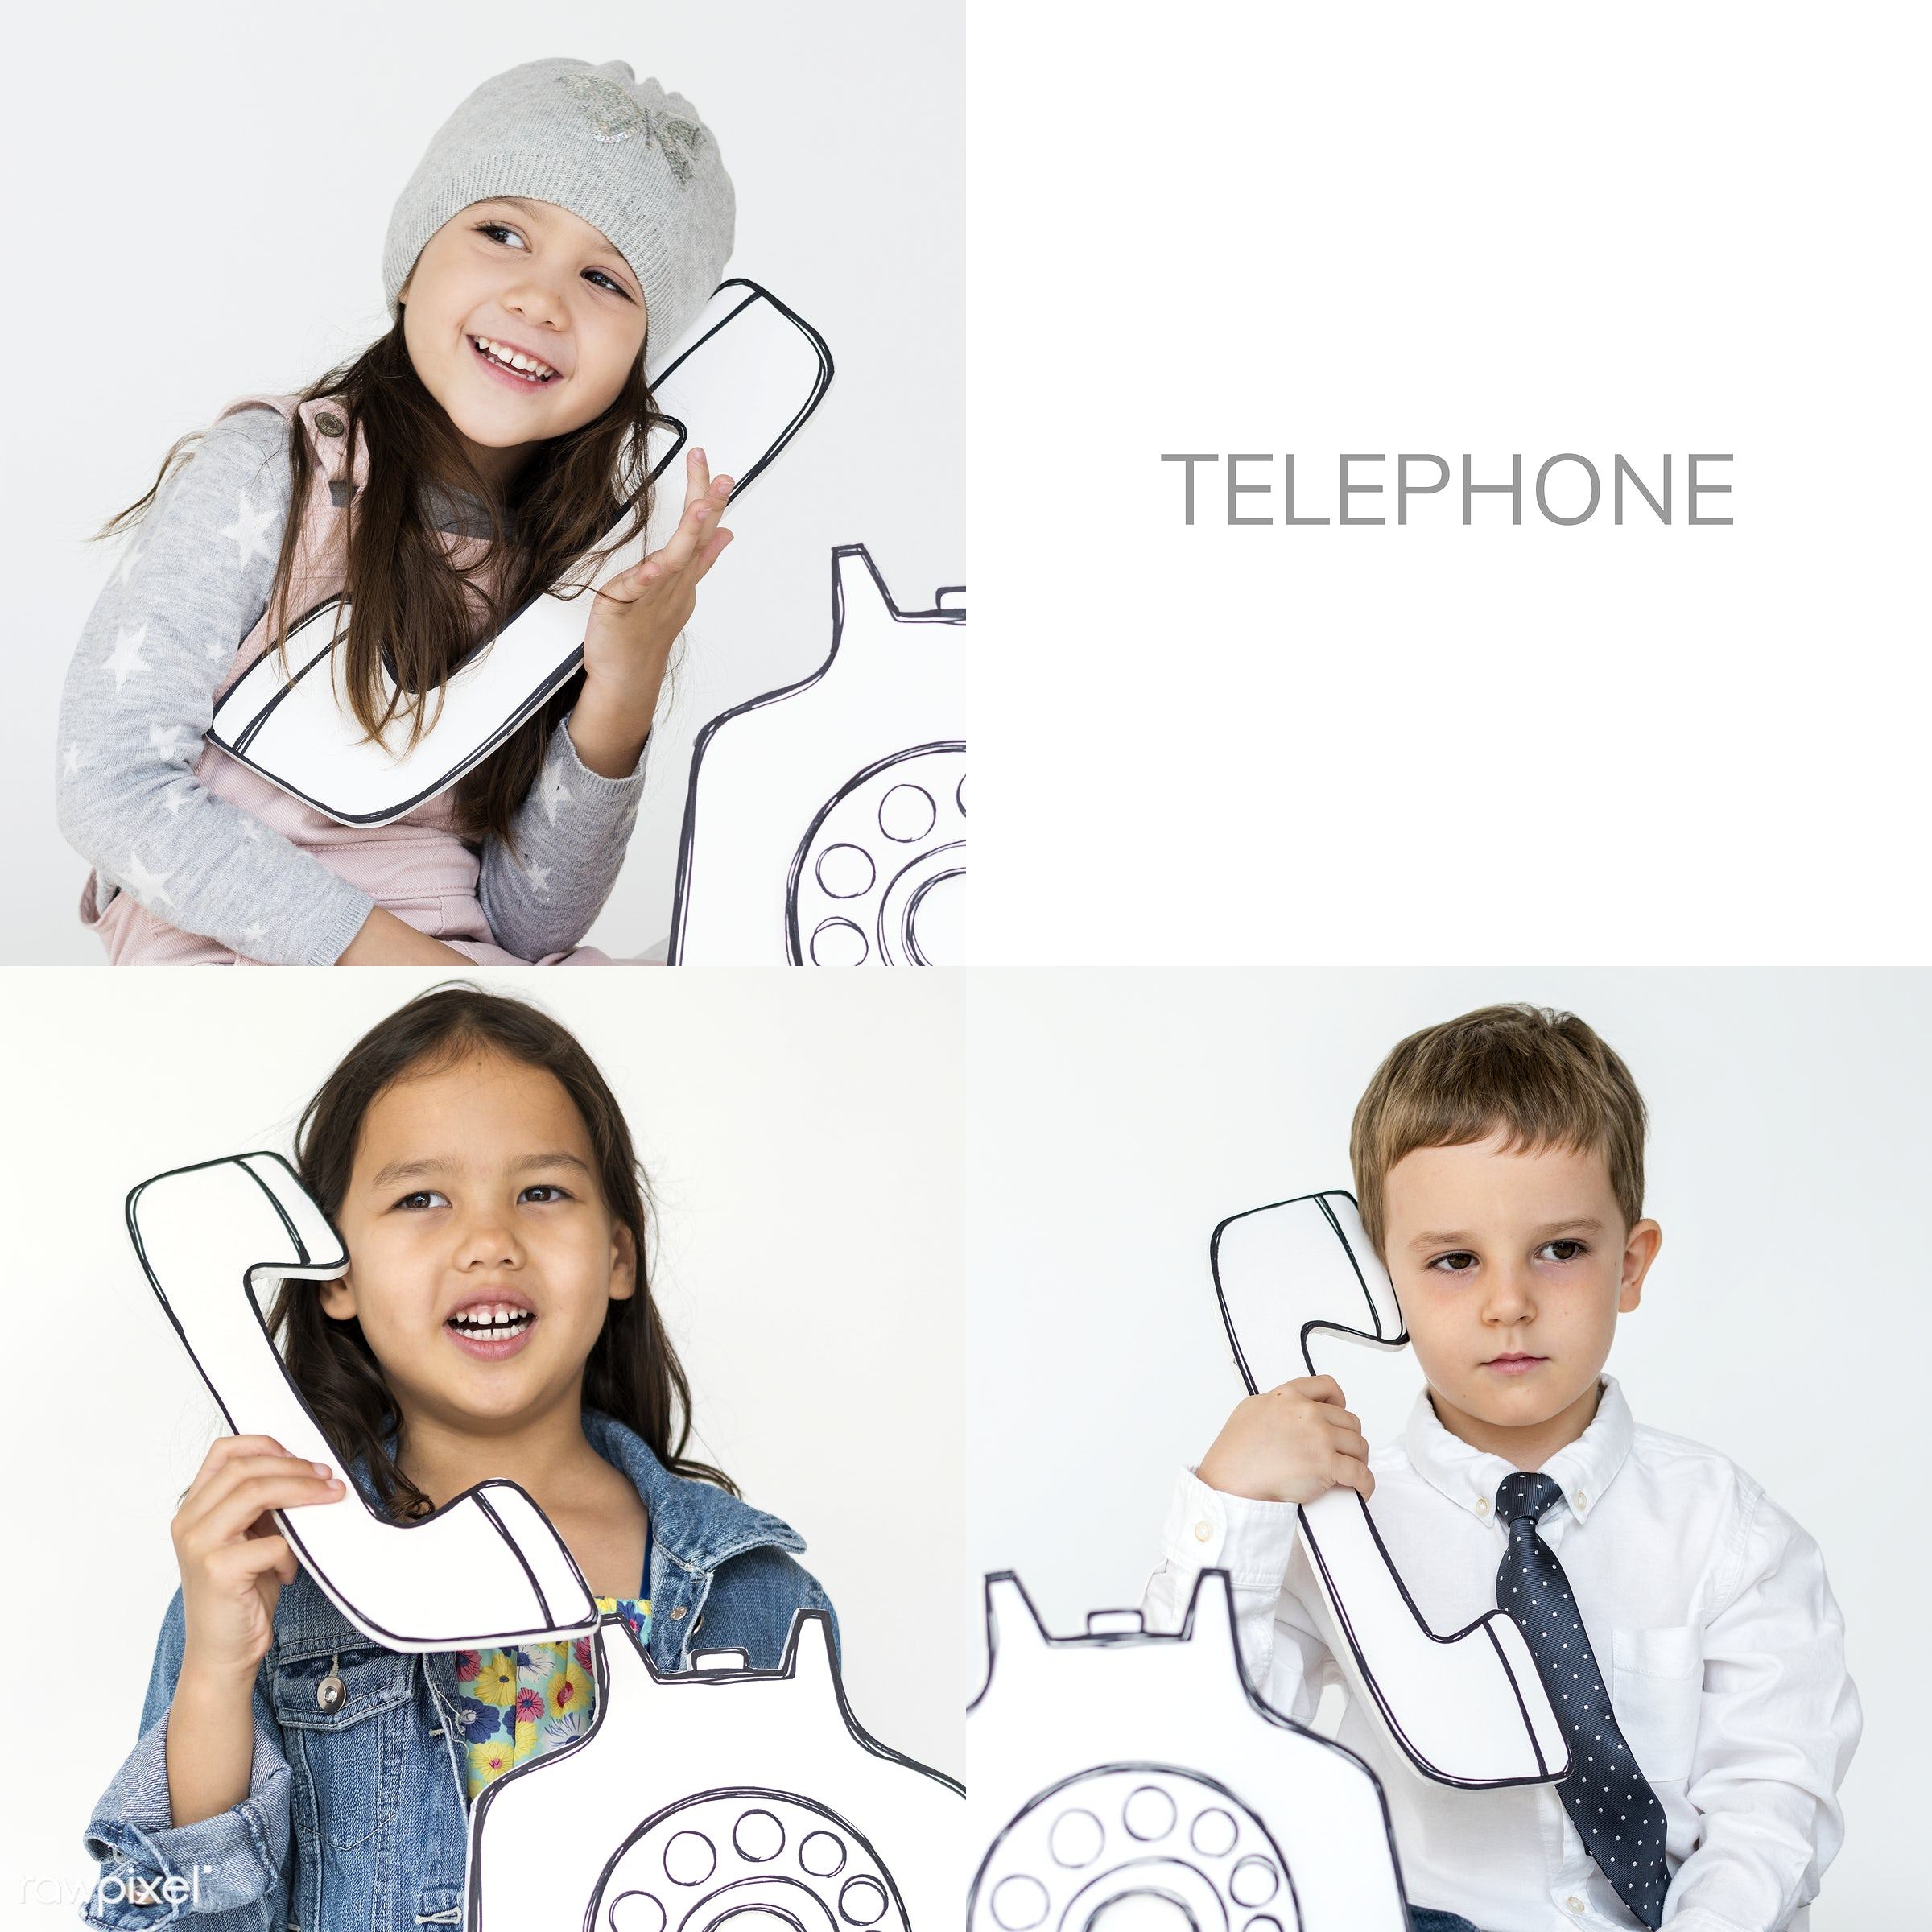 virtual, studio, invention, call, phone, person, technology, playful, set, use, children, calling, people, kid, child, life...